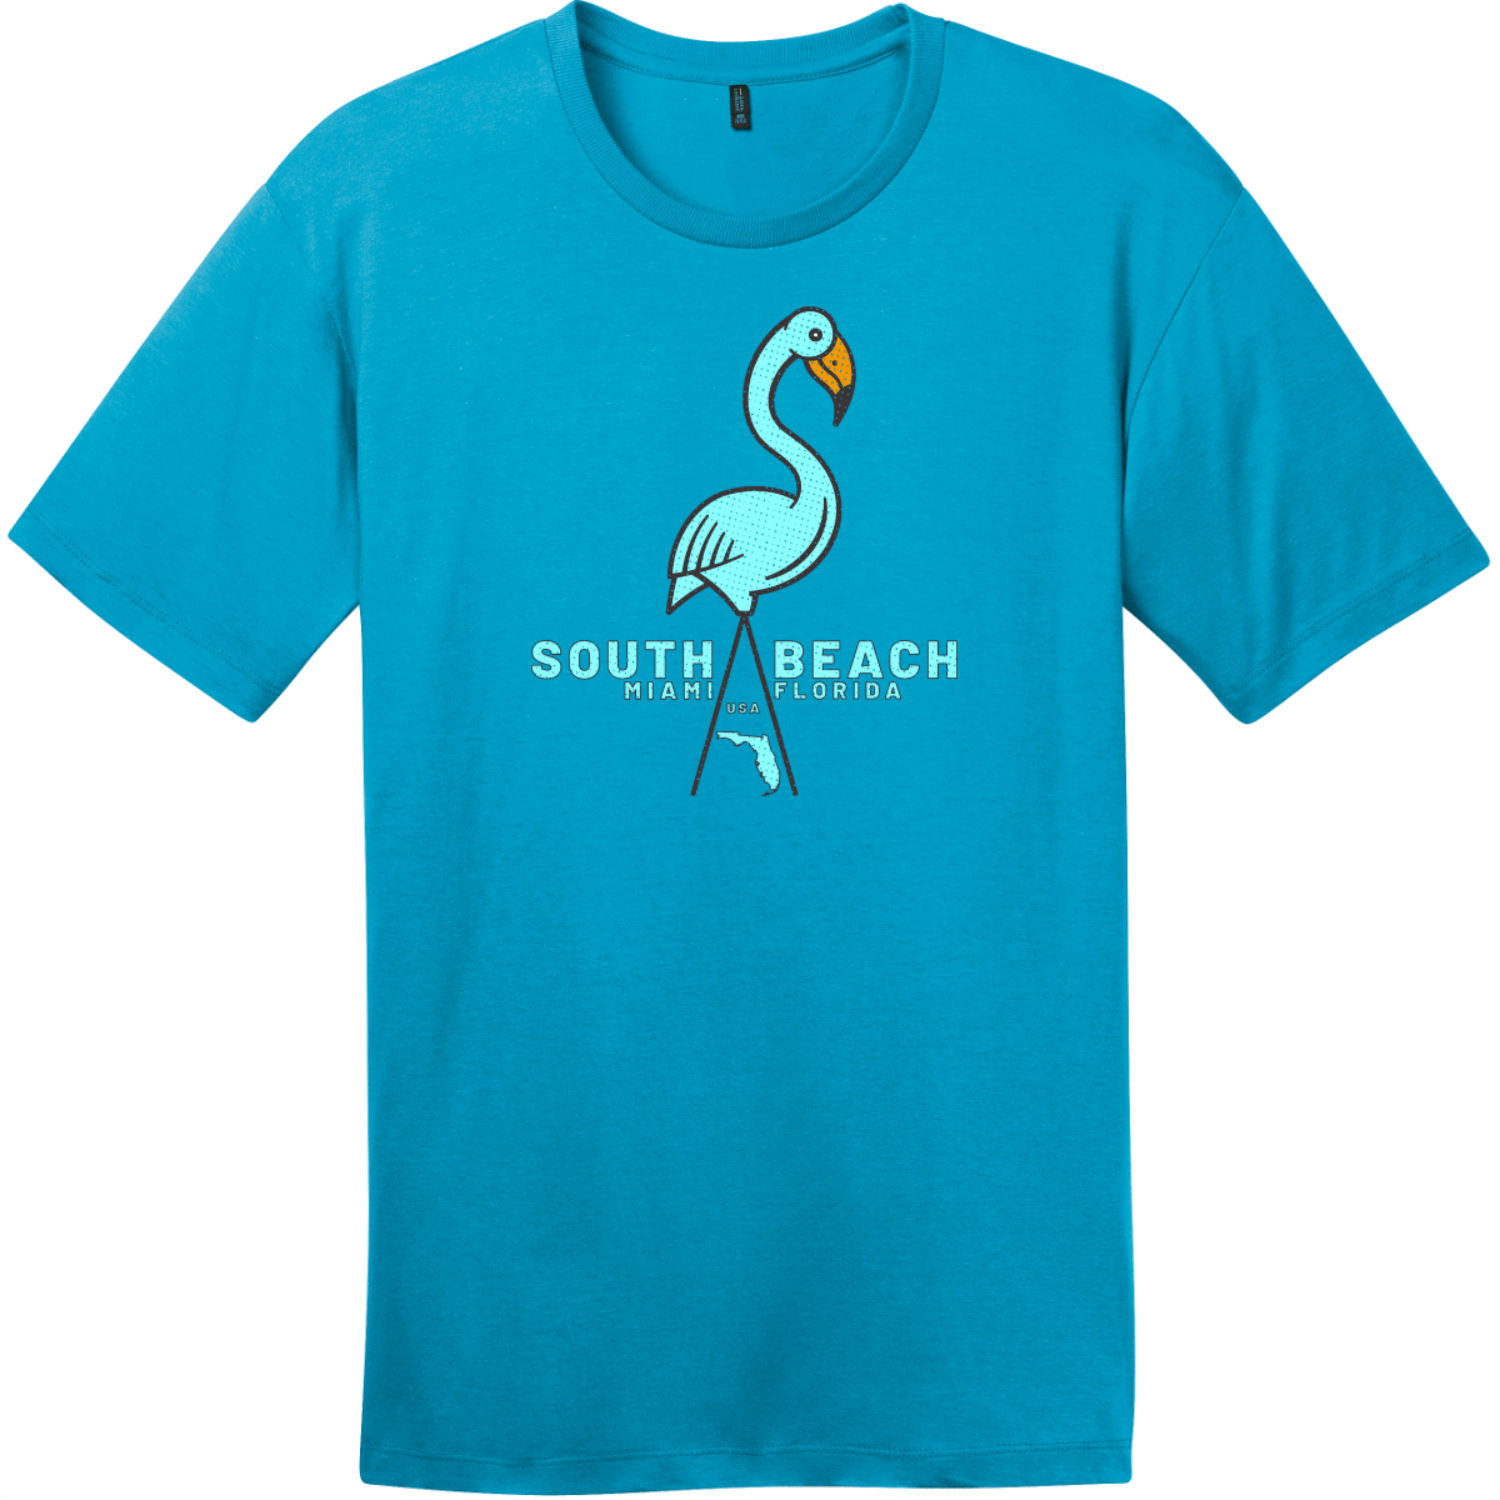 South Beach Miami Flamingo T Shirt Bright Turquoise District Perfect Weight Tee DT104